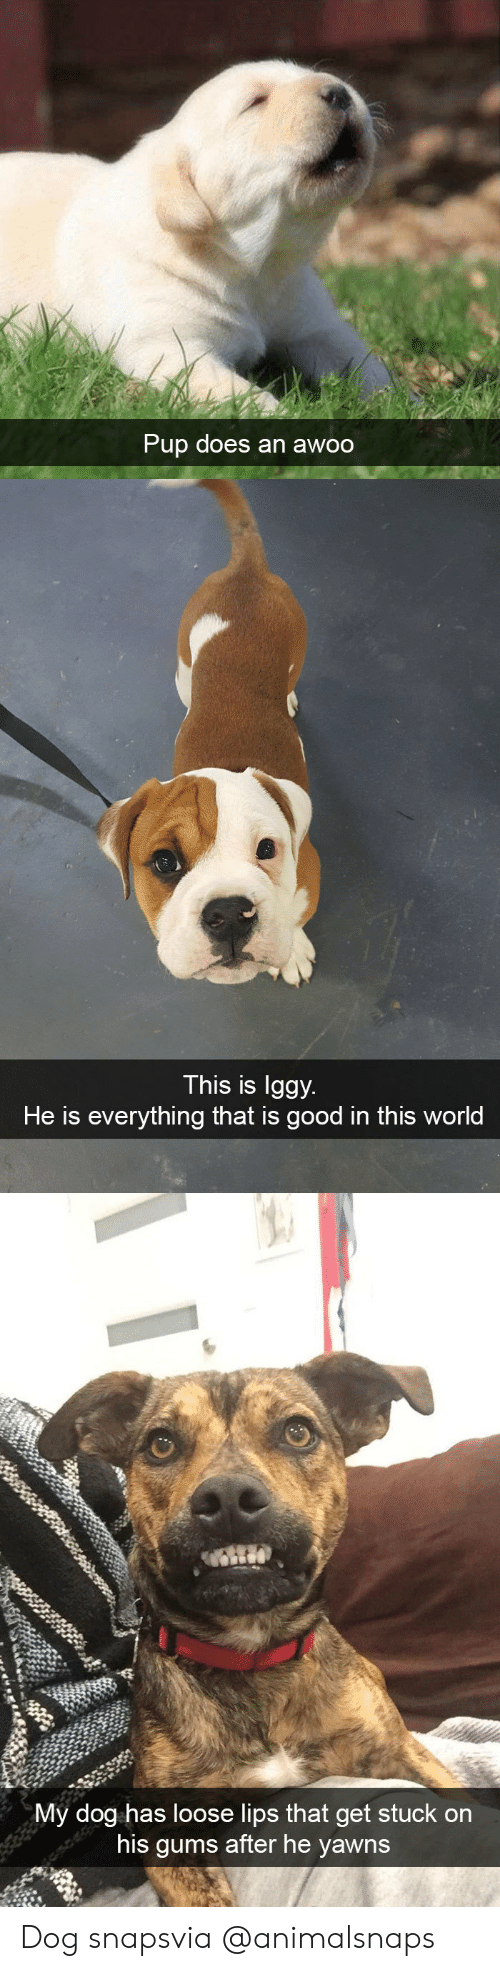 Target, Tumblr, and Good: Pup does an a  woo   This is lggy.  He is everything that is good in this world   My dog has loose lips that get stuck on  his qums after he vawns Dog snapsvia @animalsnaps​